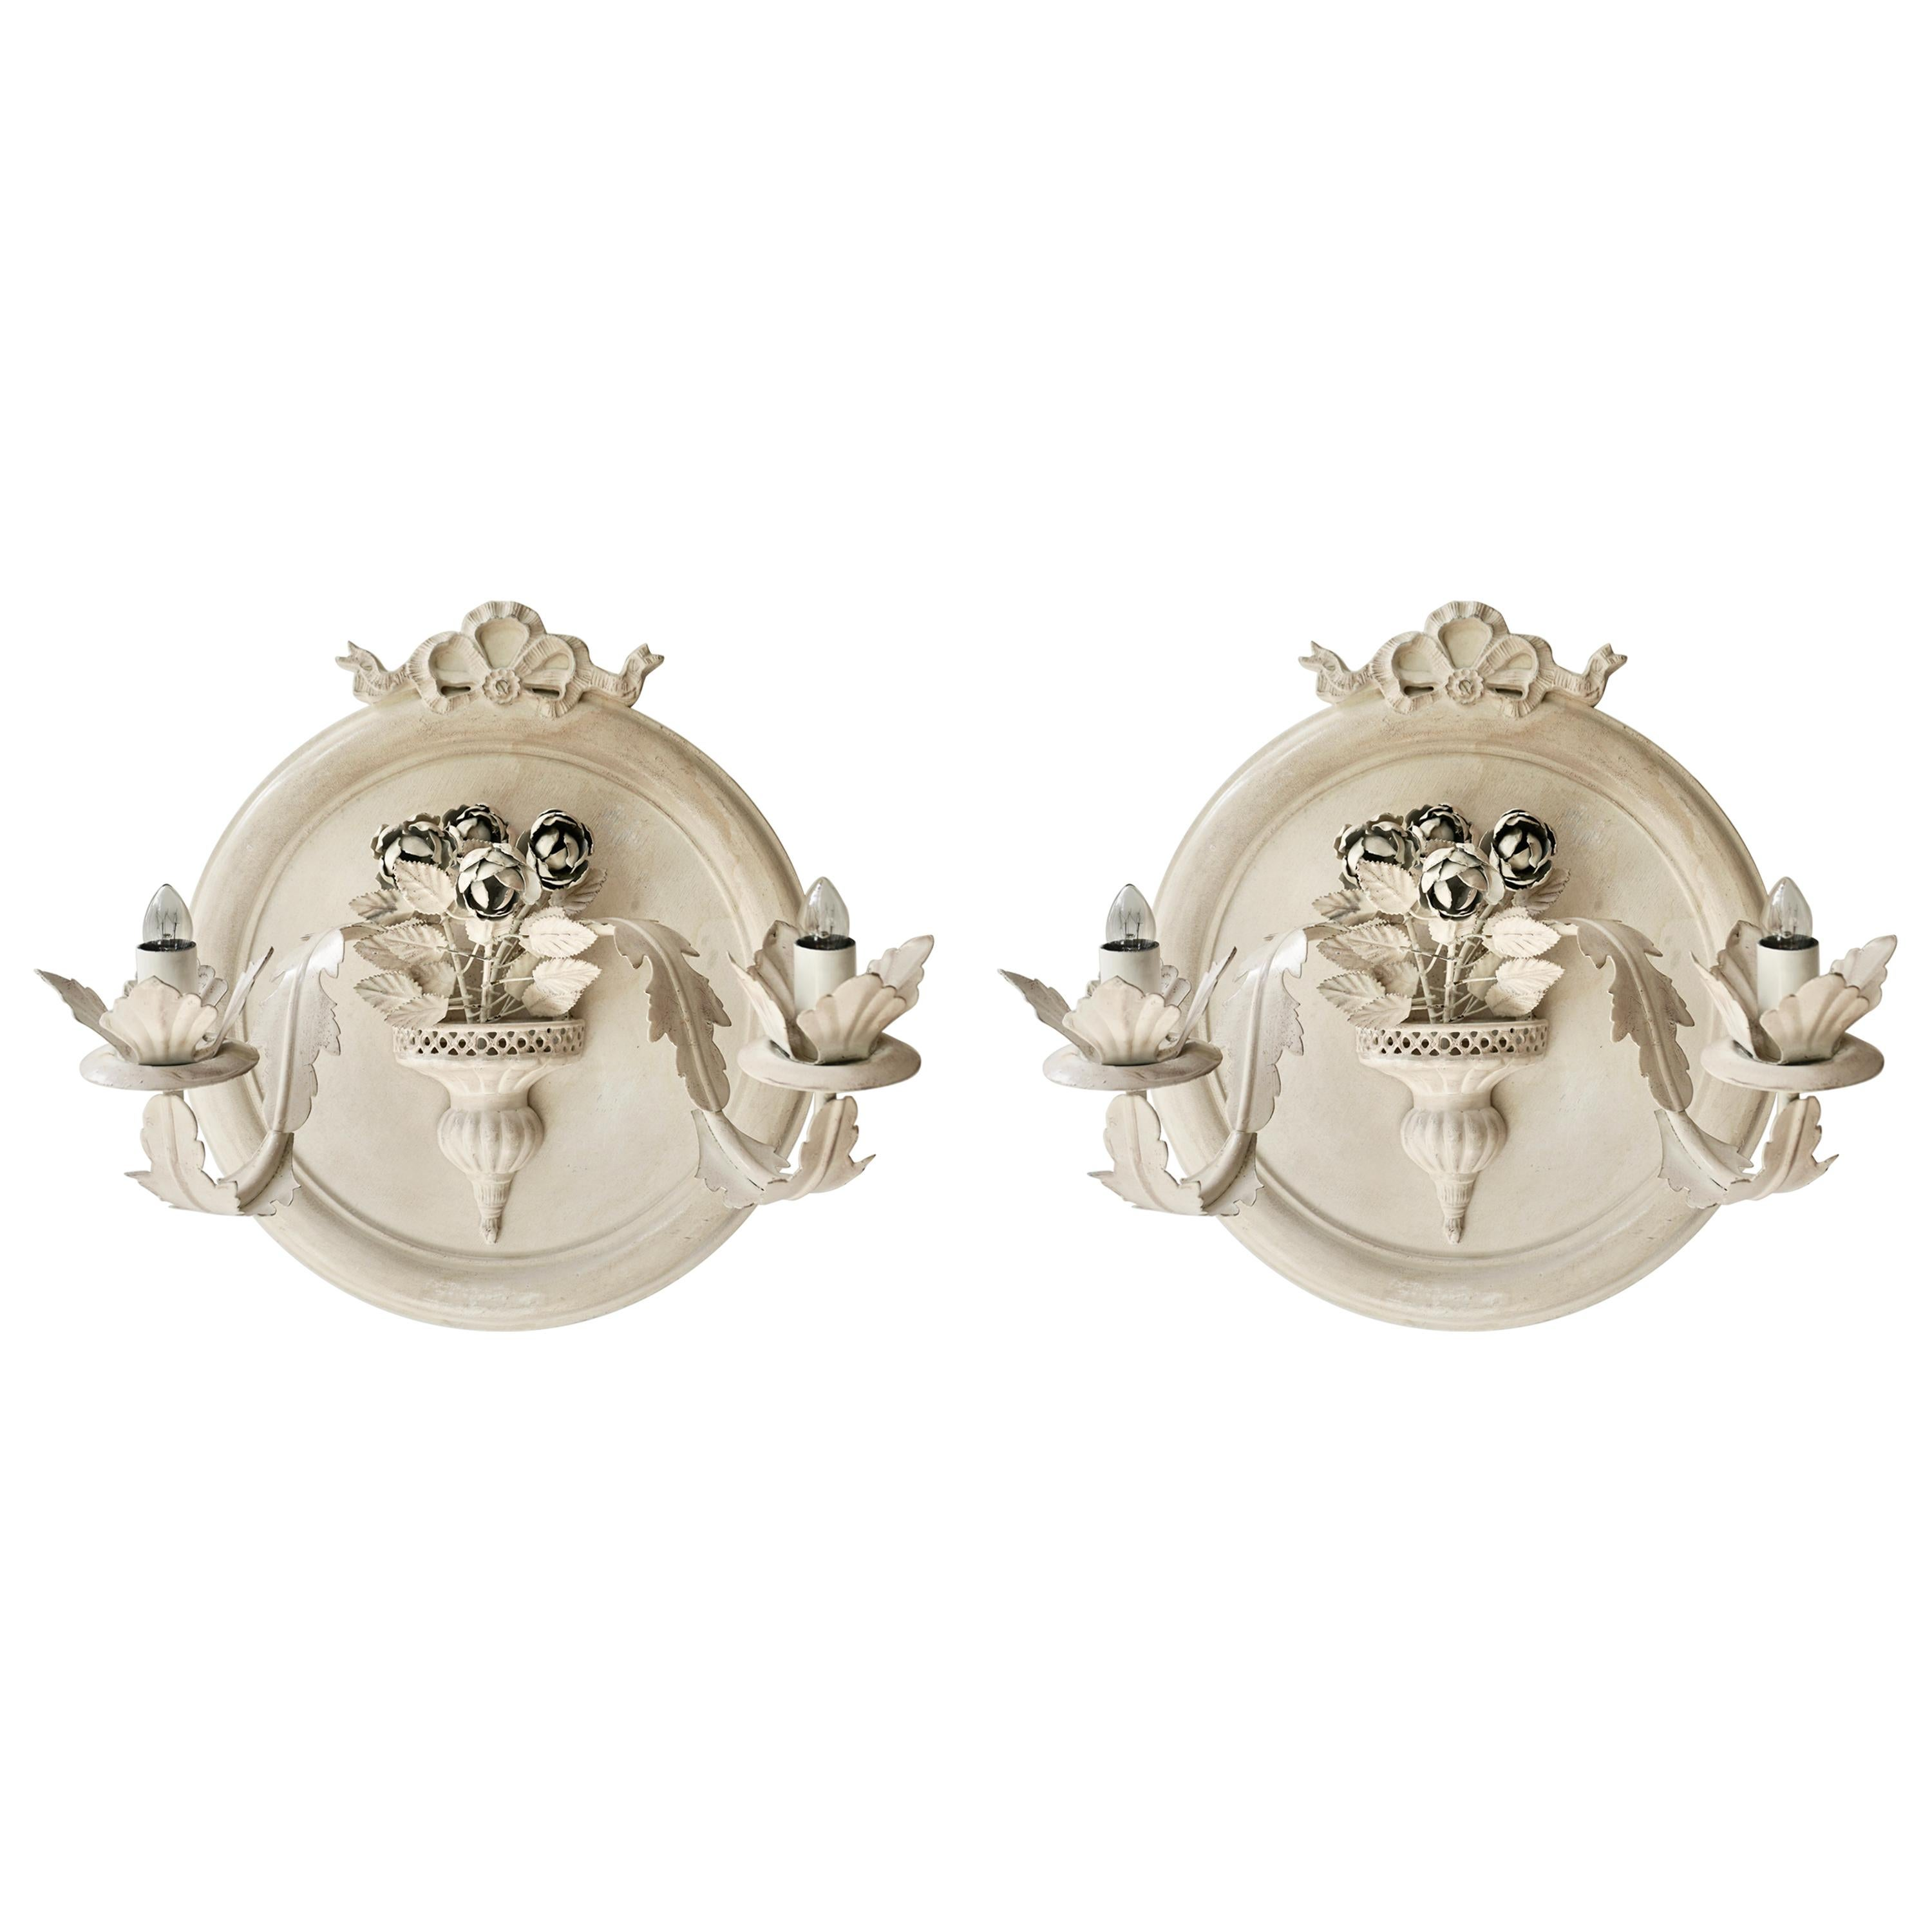 Pair of Vintage Italian White Painted Metal Electric Candle Sconces